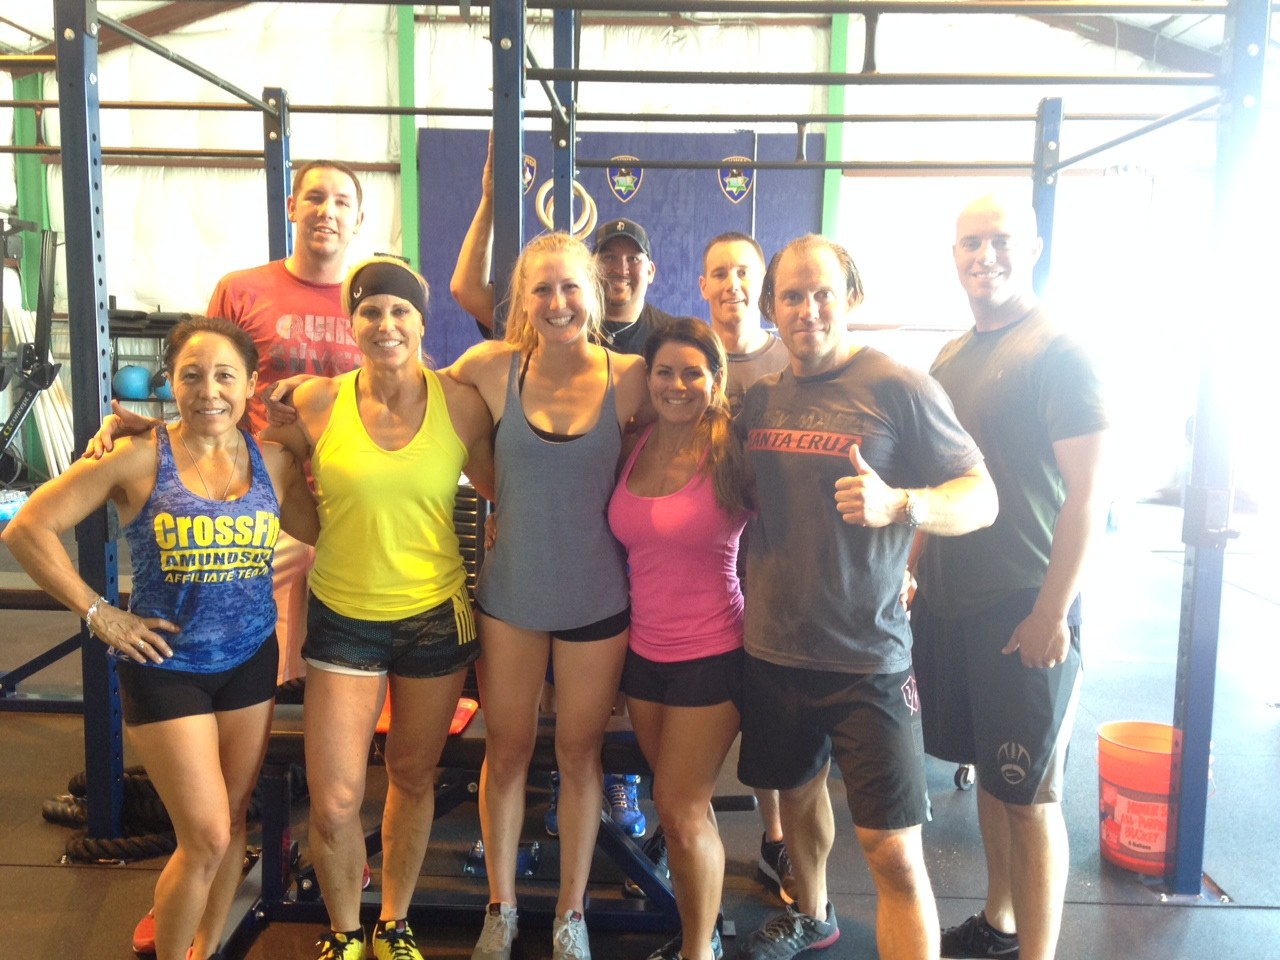 May crossfit amundson